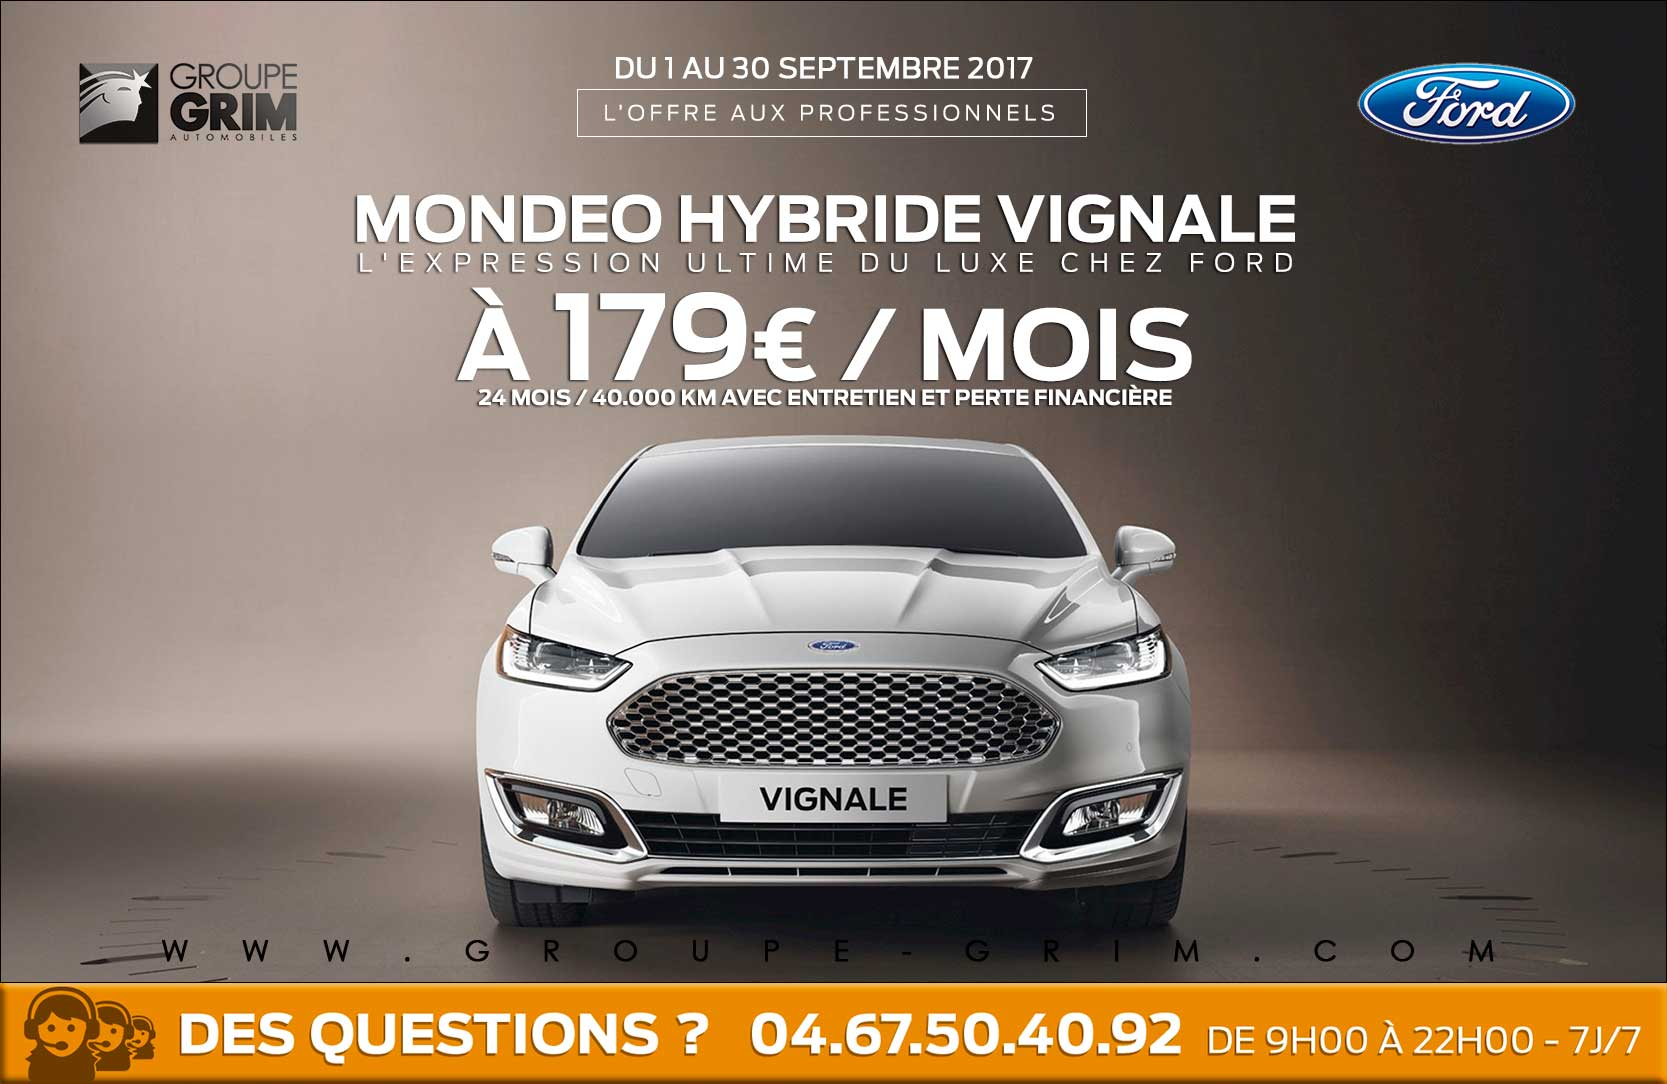 mondeo hybride vignale a 179 mois ford grim auto. Black Bedroom Furniture Sets. Home Design Ideas